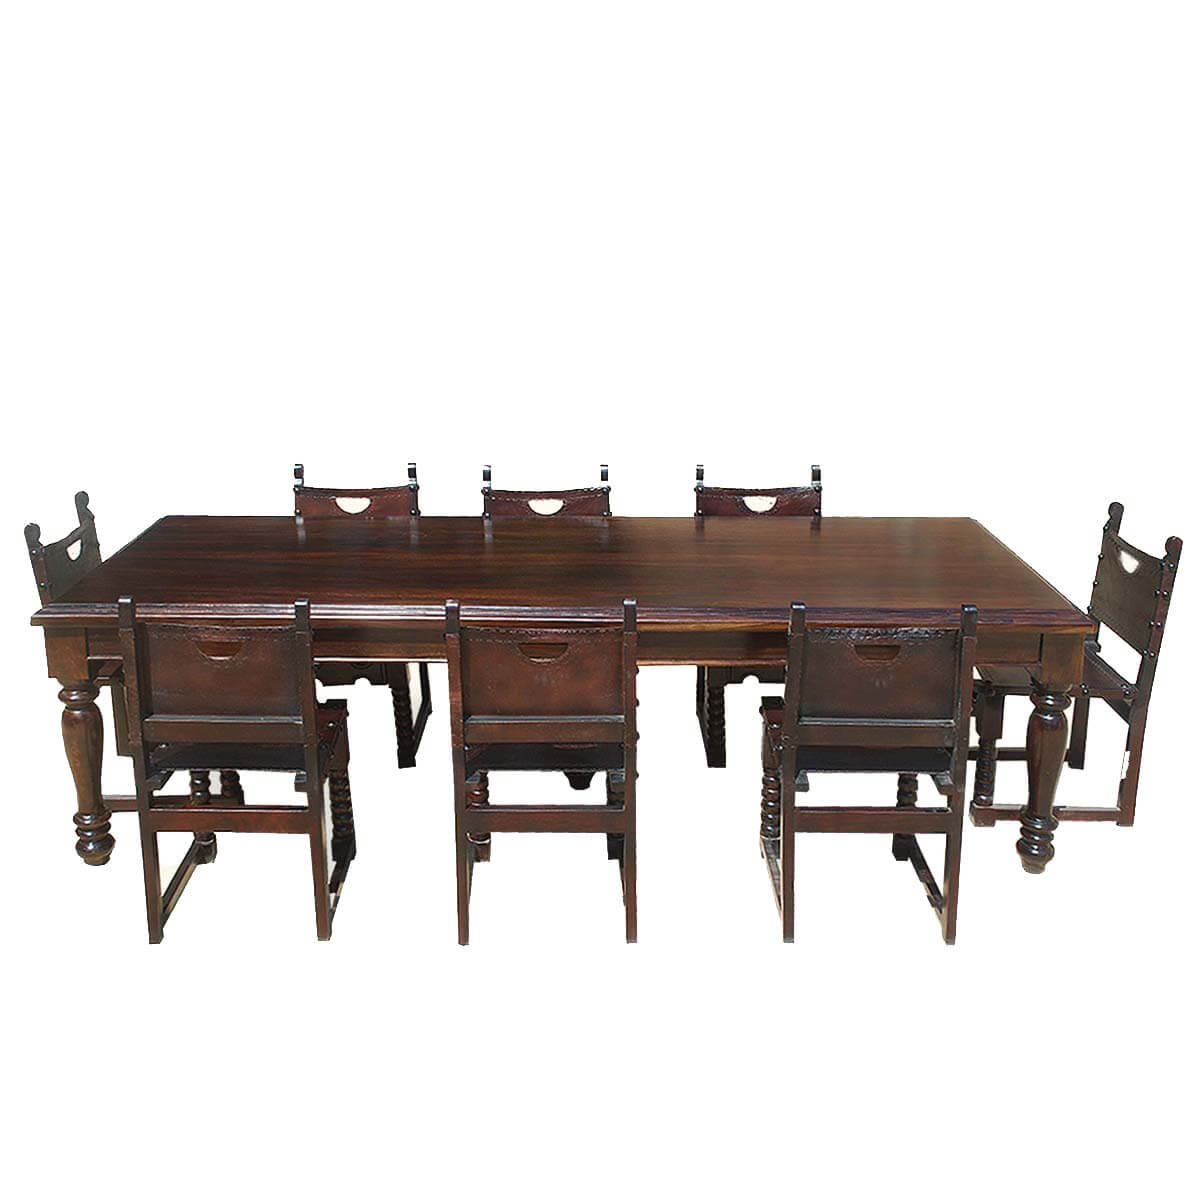 Large Rustic Solid Wood Dining Room Table w 8 Leather  : 48761 from www.sierralivingconcepts.com size 1200 x 1200 jpeg 96kB